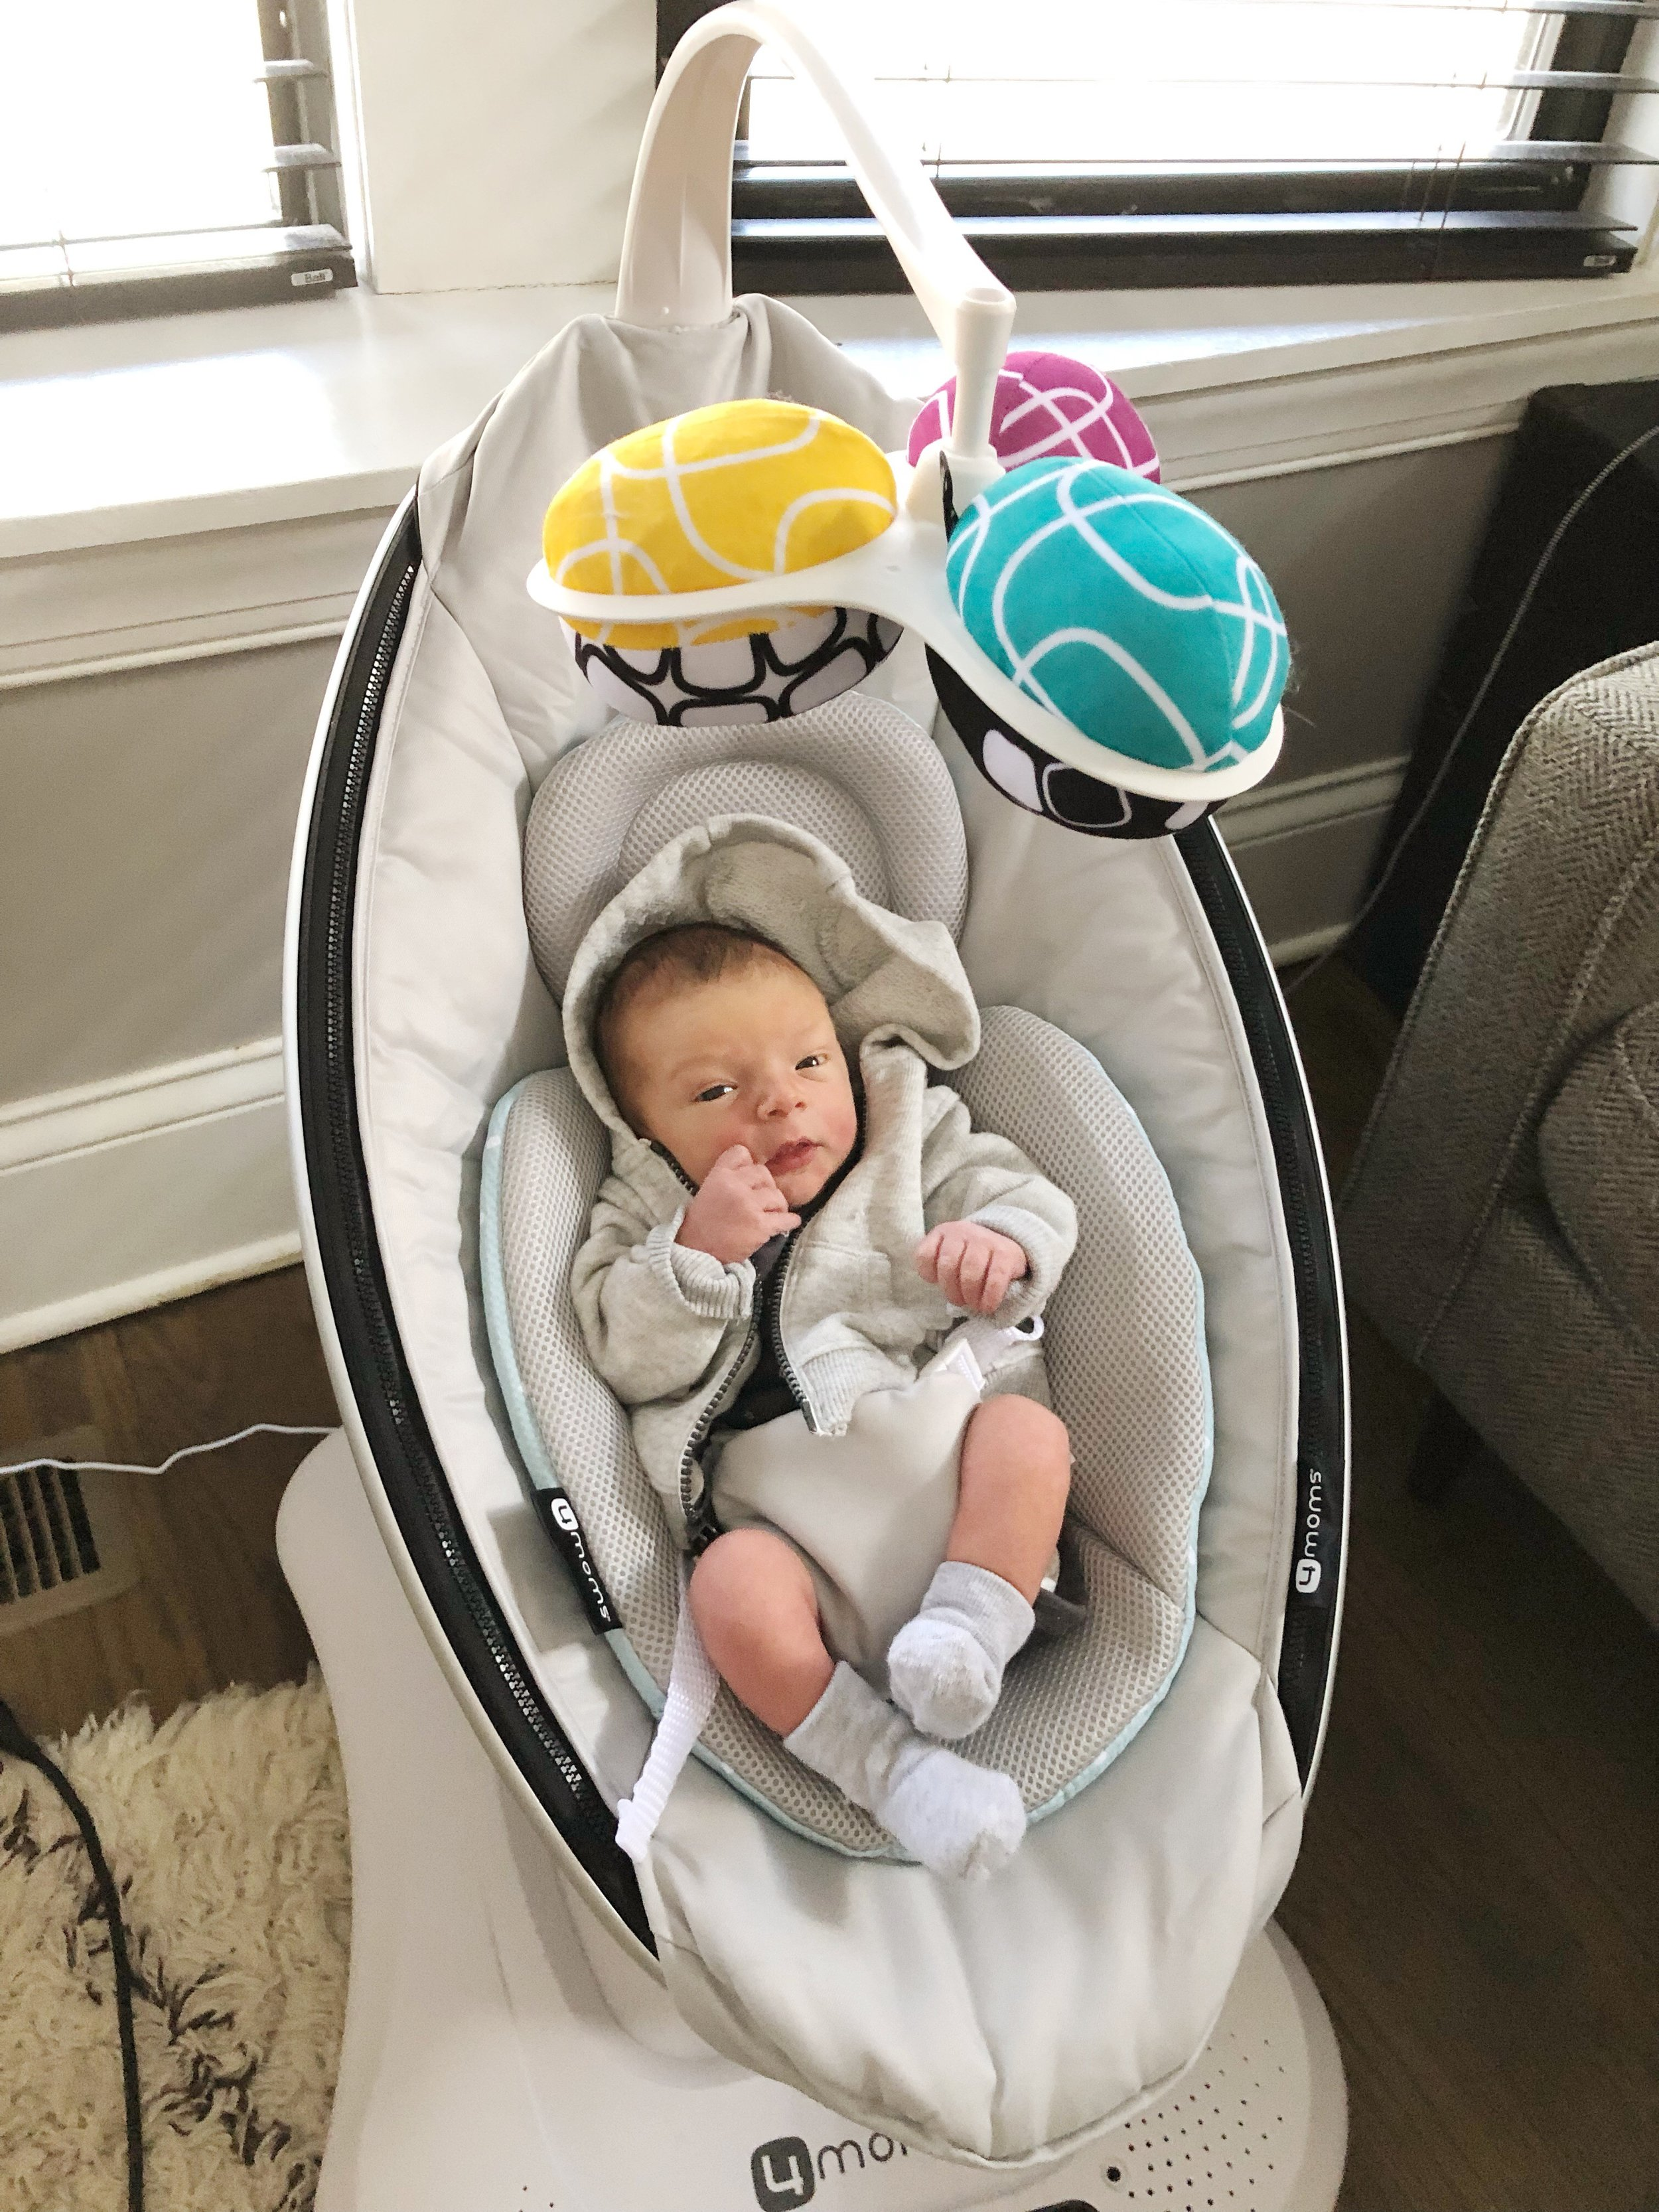 Using the MamaRoo at about 1 week old!